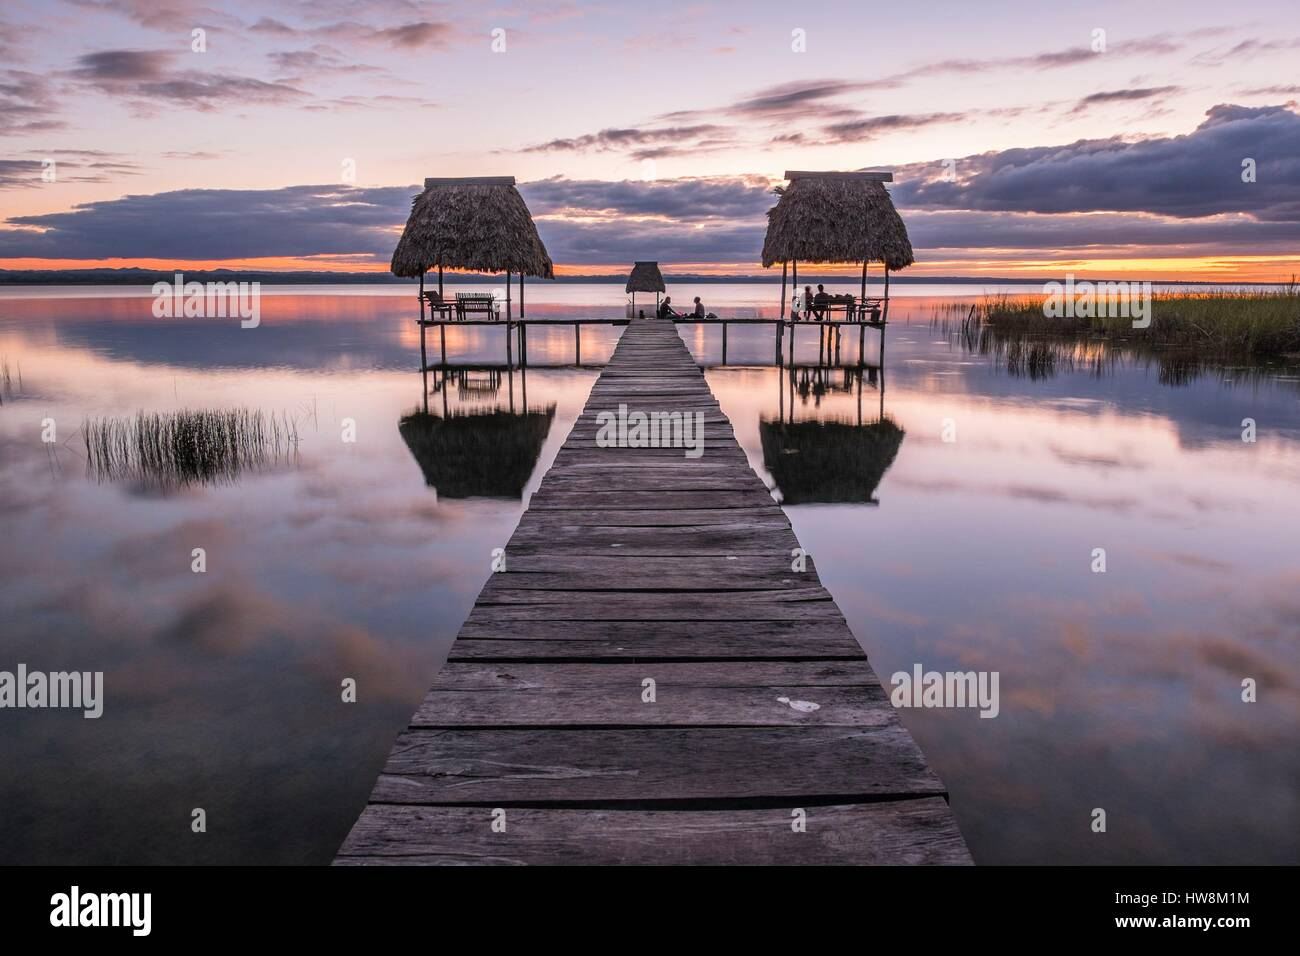 Guatemala, Peten department, El Remate, little village on the east side of Lake Peten Itza - Stock Image